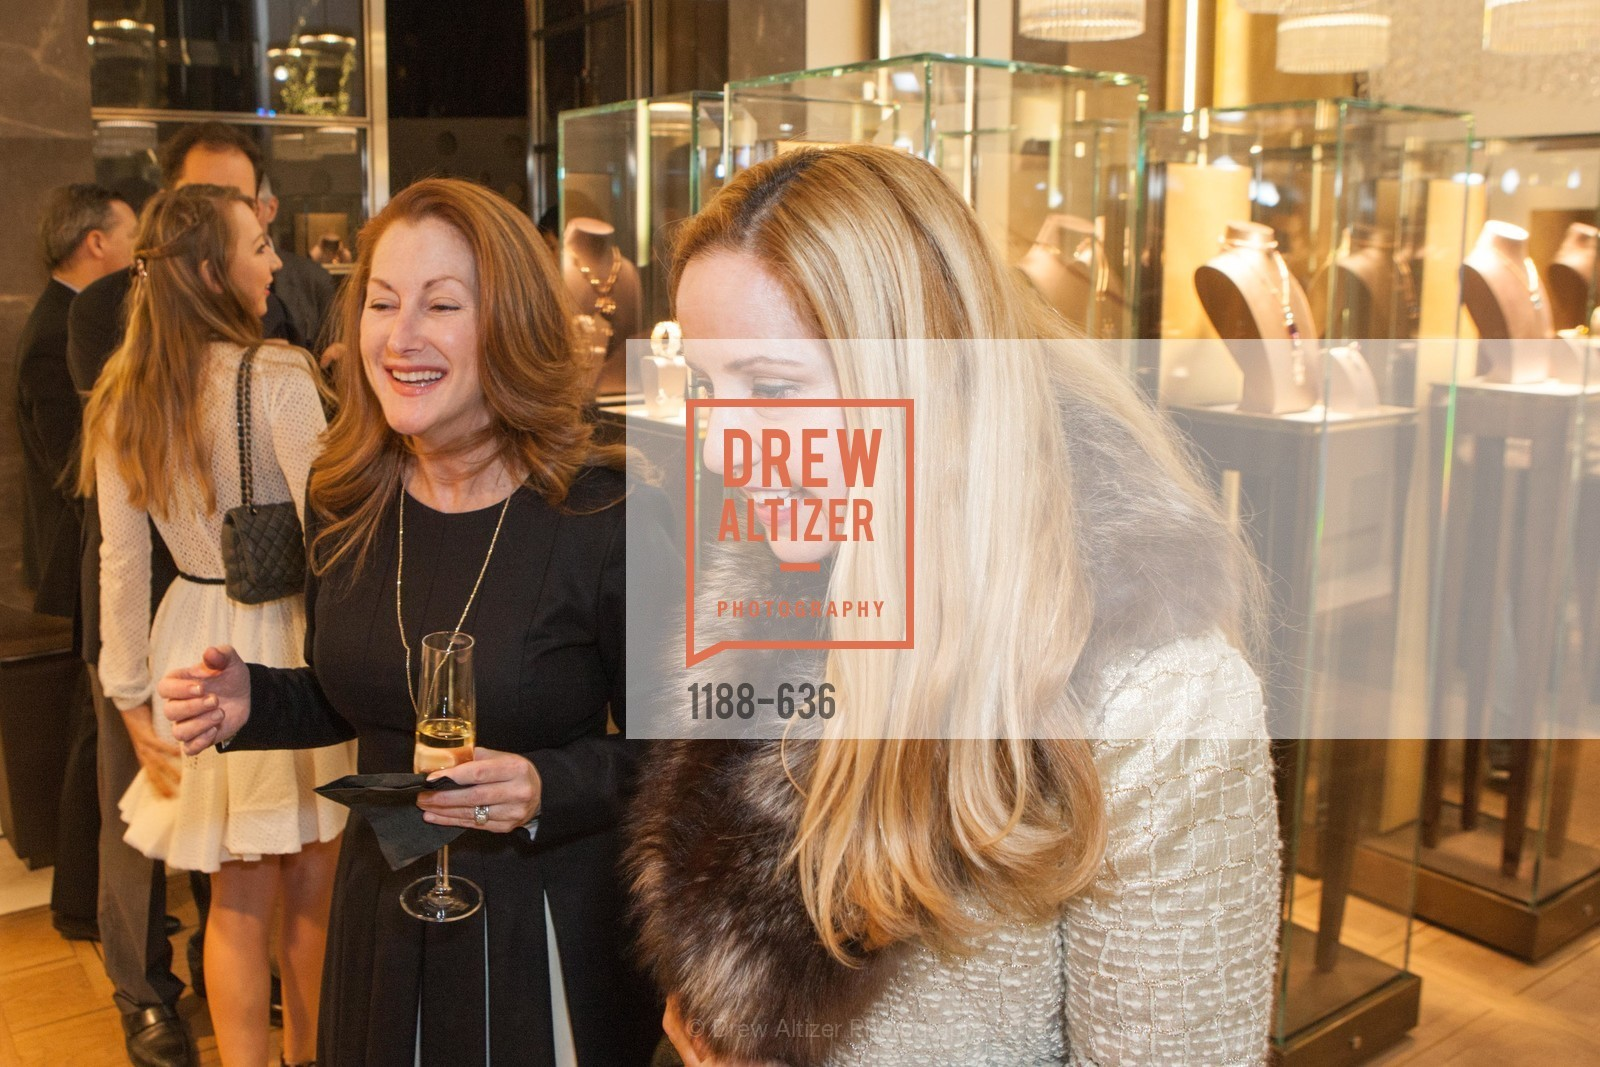 Extras, Bulgari San Francisco Presents WINE, WHISKEY & WATCHES, December 8th, 2015, Photo,Drew Altizer, Drew Altizer Photography, full-service agency, private events, San Francisco photographer, photographer california